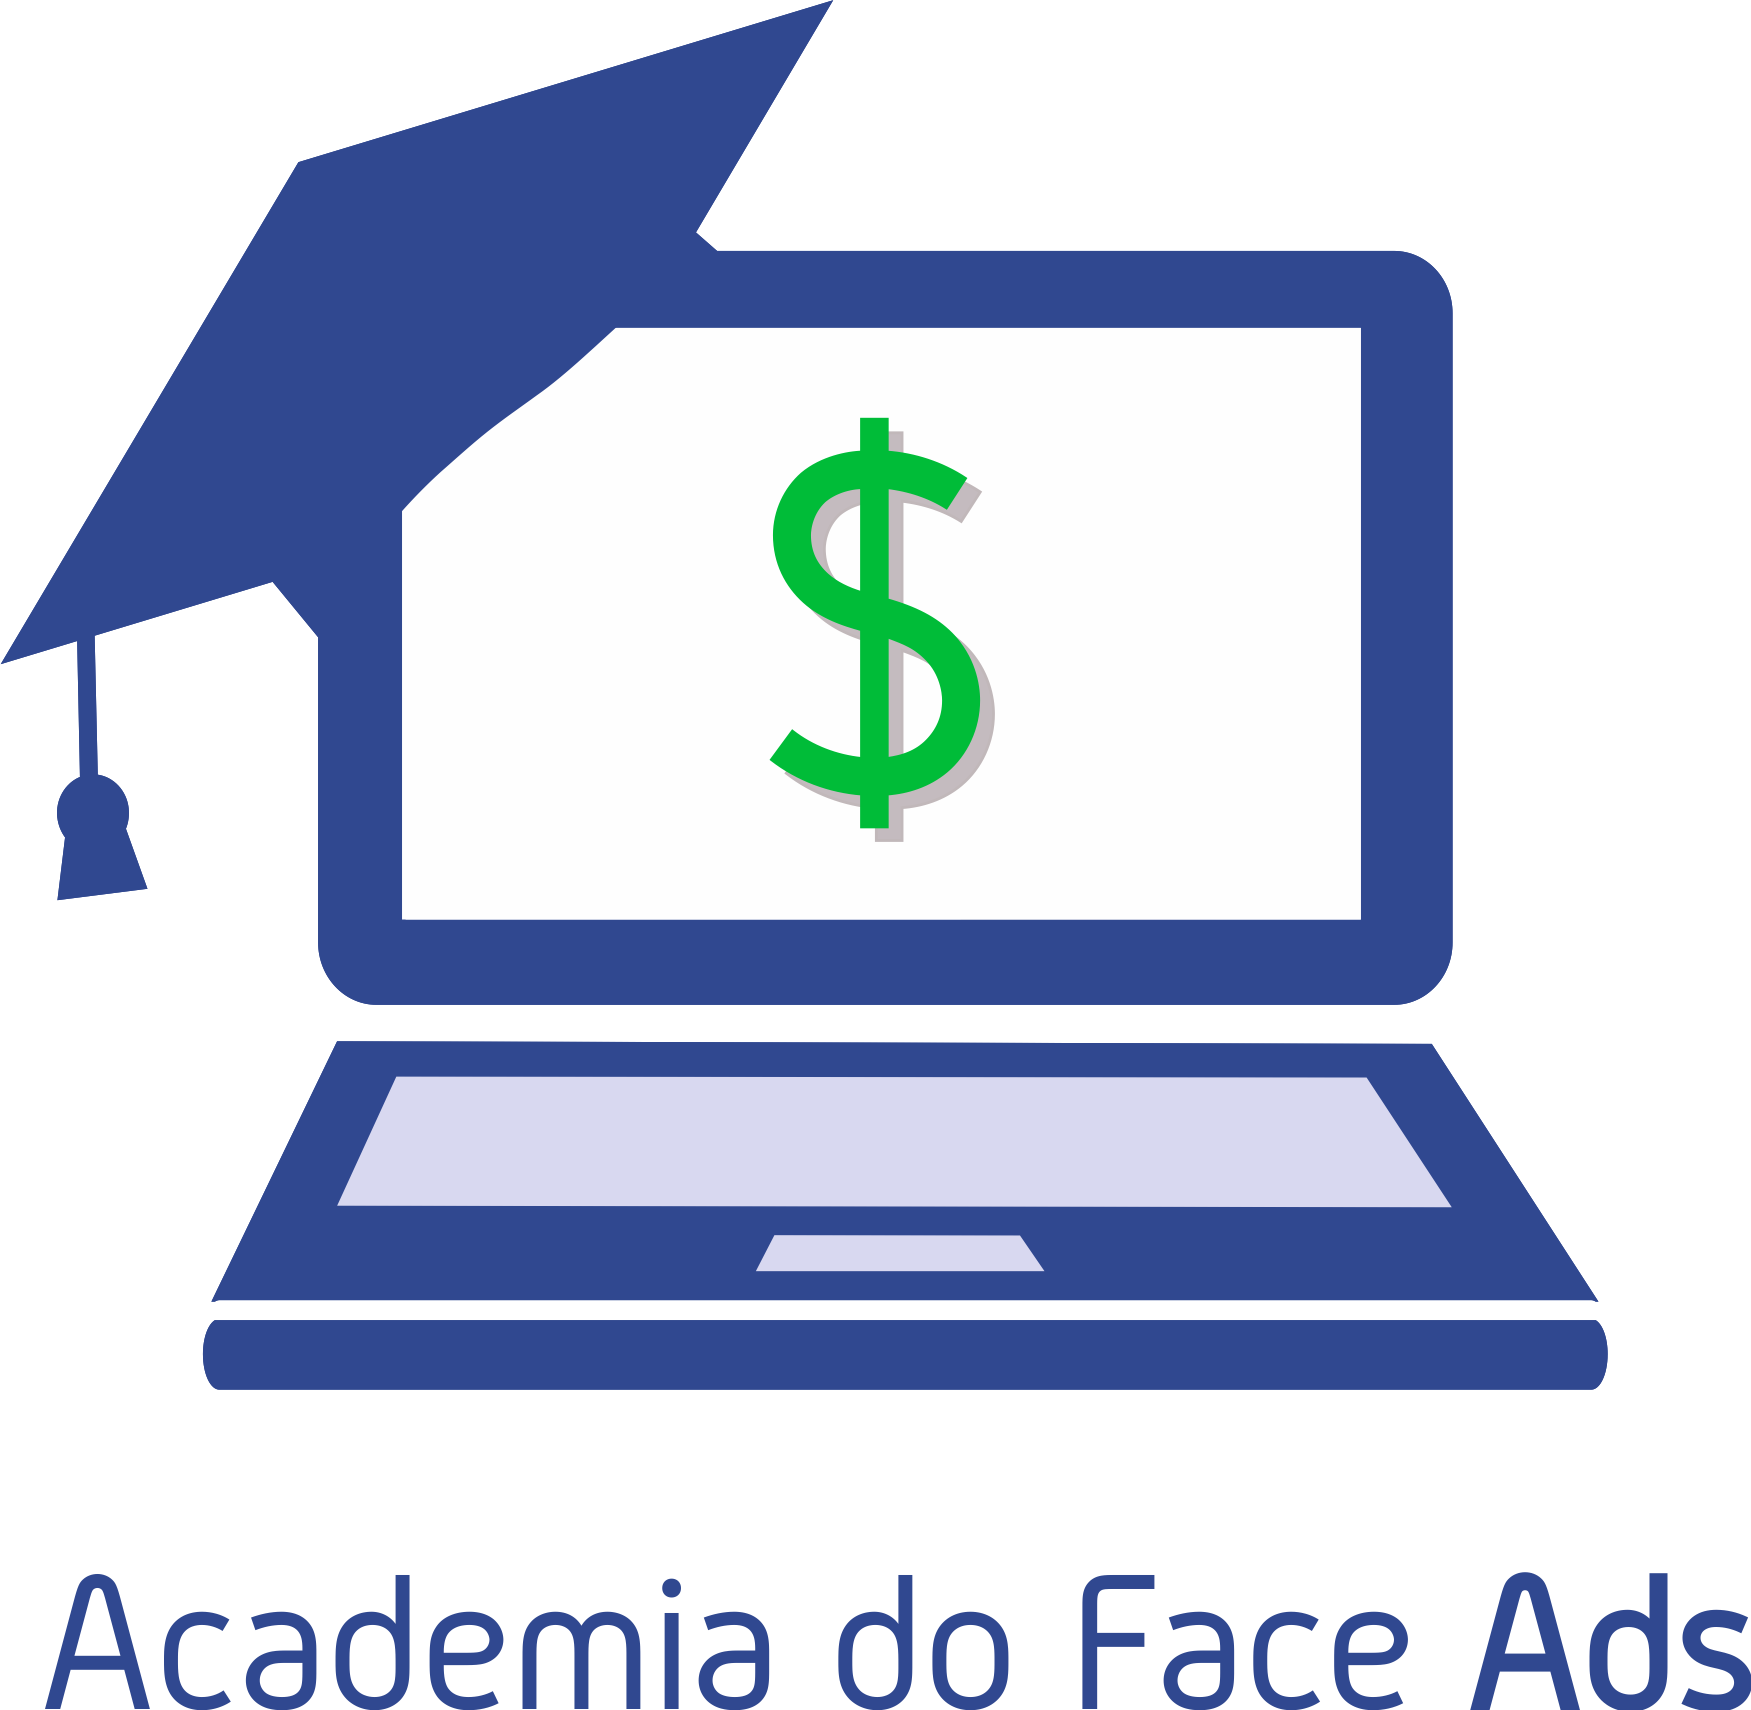 Academia do Face Ads